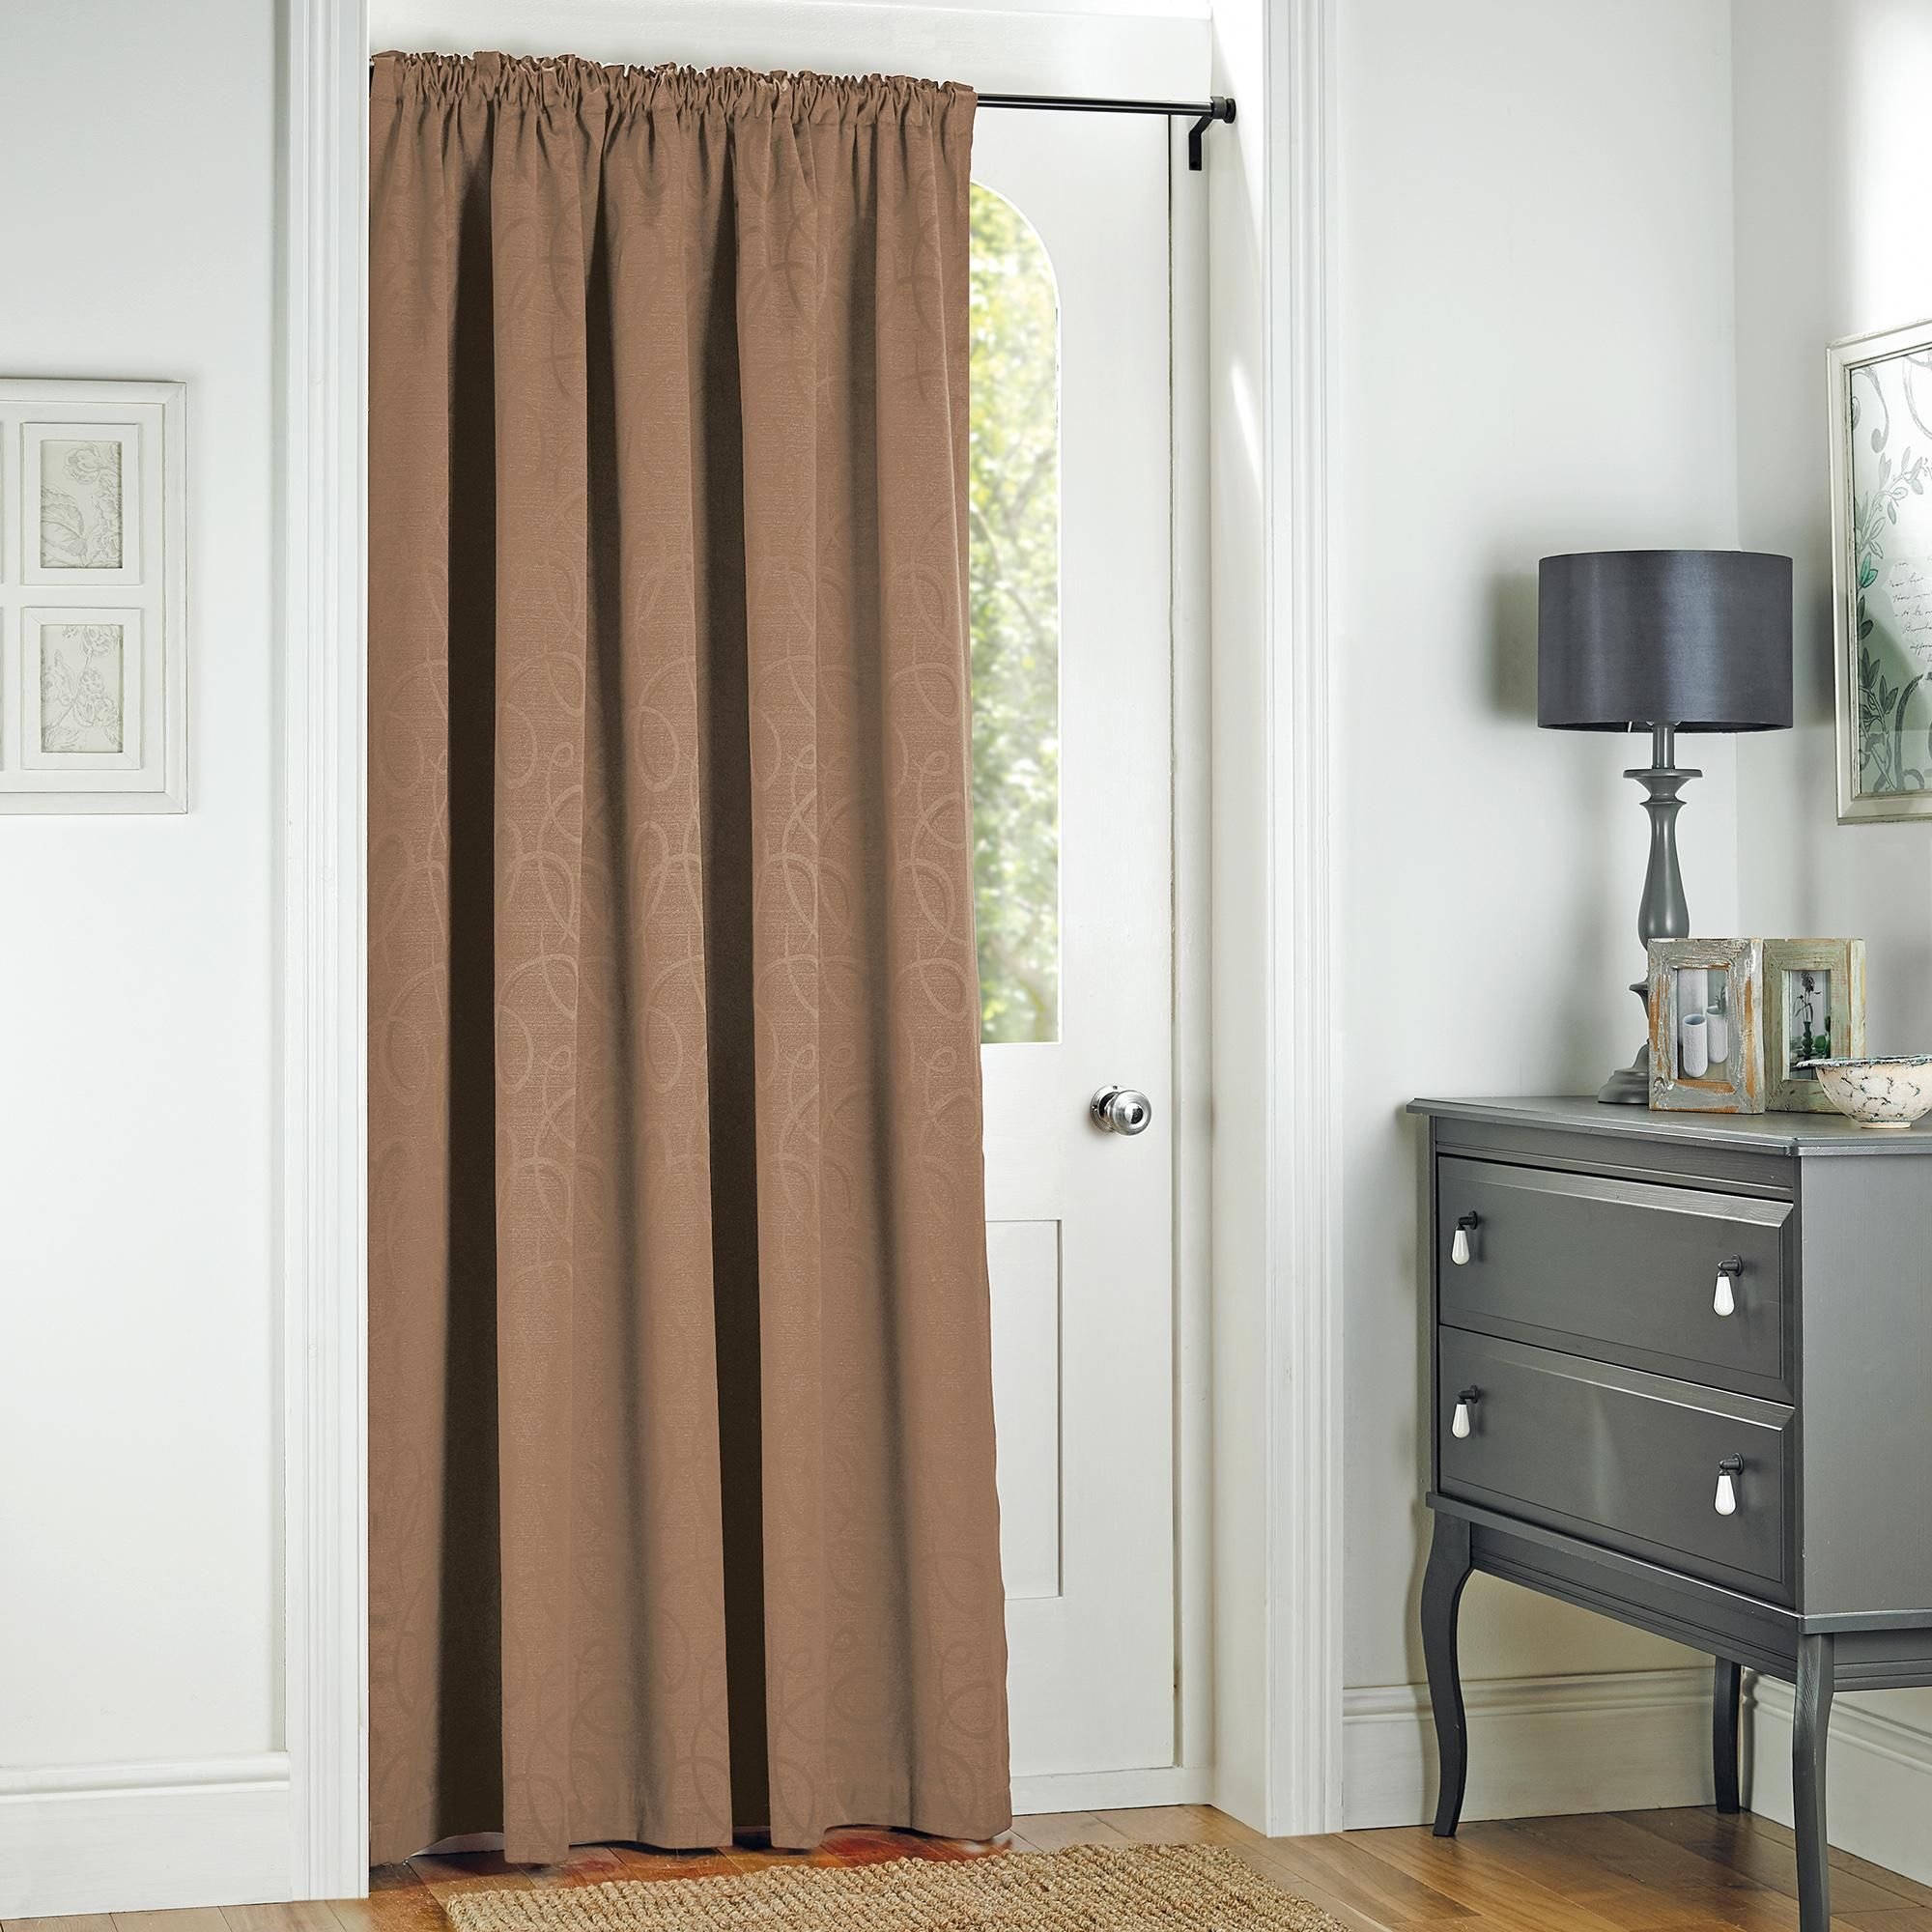 Keep Your Home Warm With Thermal Door Curtain Curtains Door Curtains Insulated Curtains